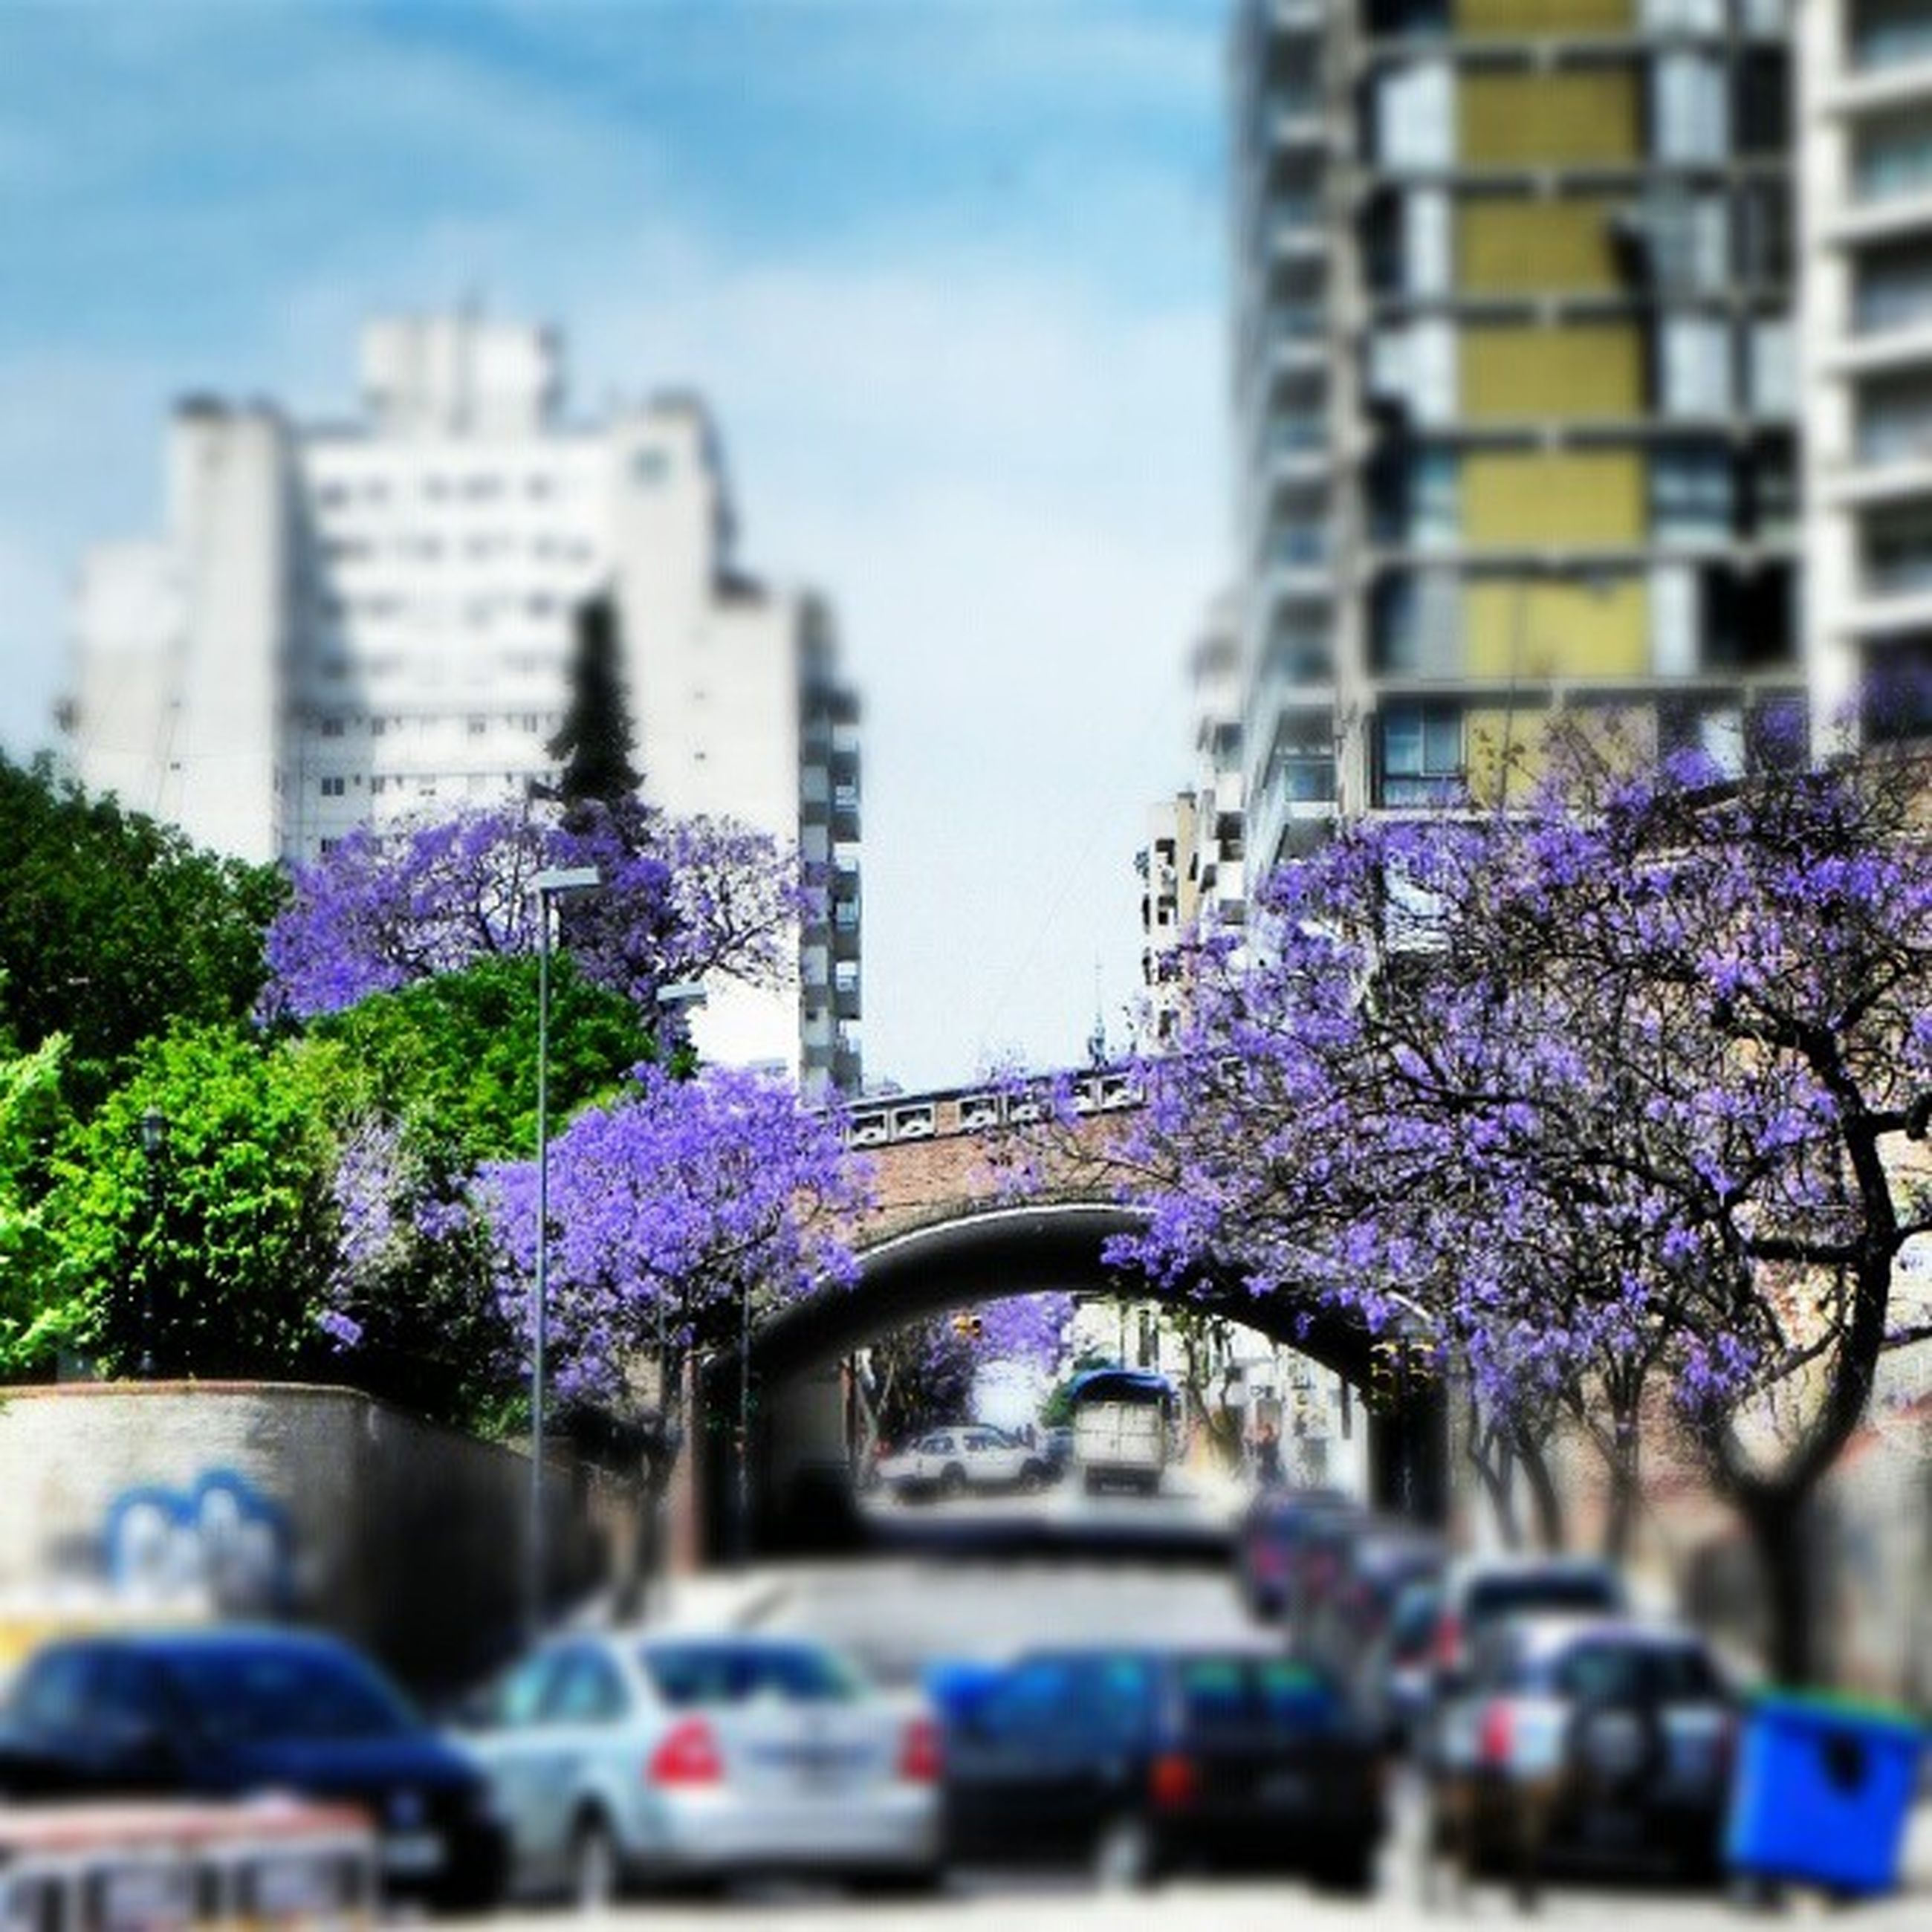 flower, building exterior, architecture, built structure, city, transportation, car, tree, land vehicle, growth, purple, mode of transport, fragility, focus on foreground, selective focus, freshness, day, outdoors, road, sky